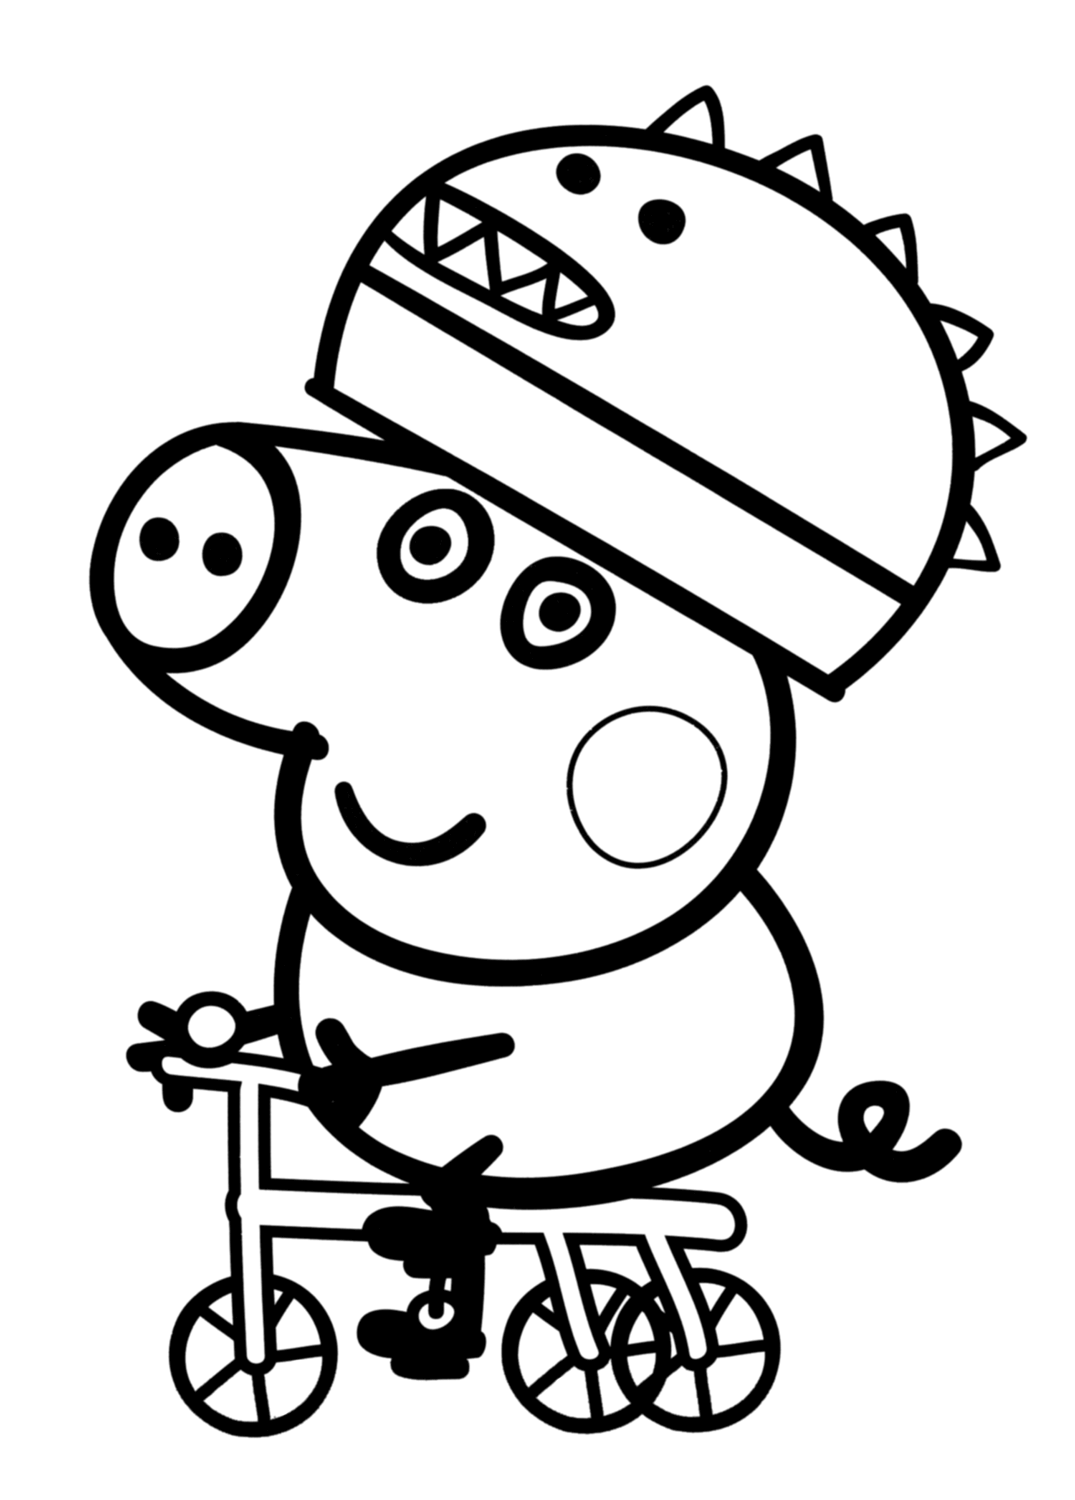 30 Printable Peppa Pig Coloring Pages You Won\'t Find Anywhere